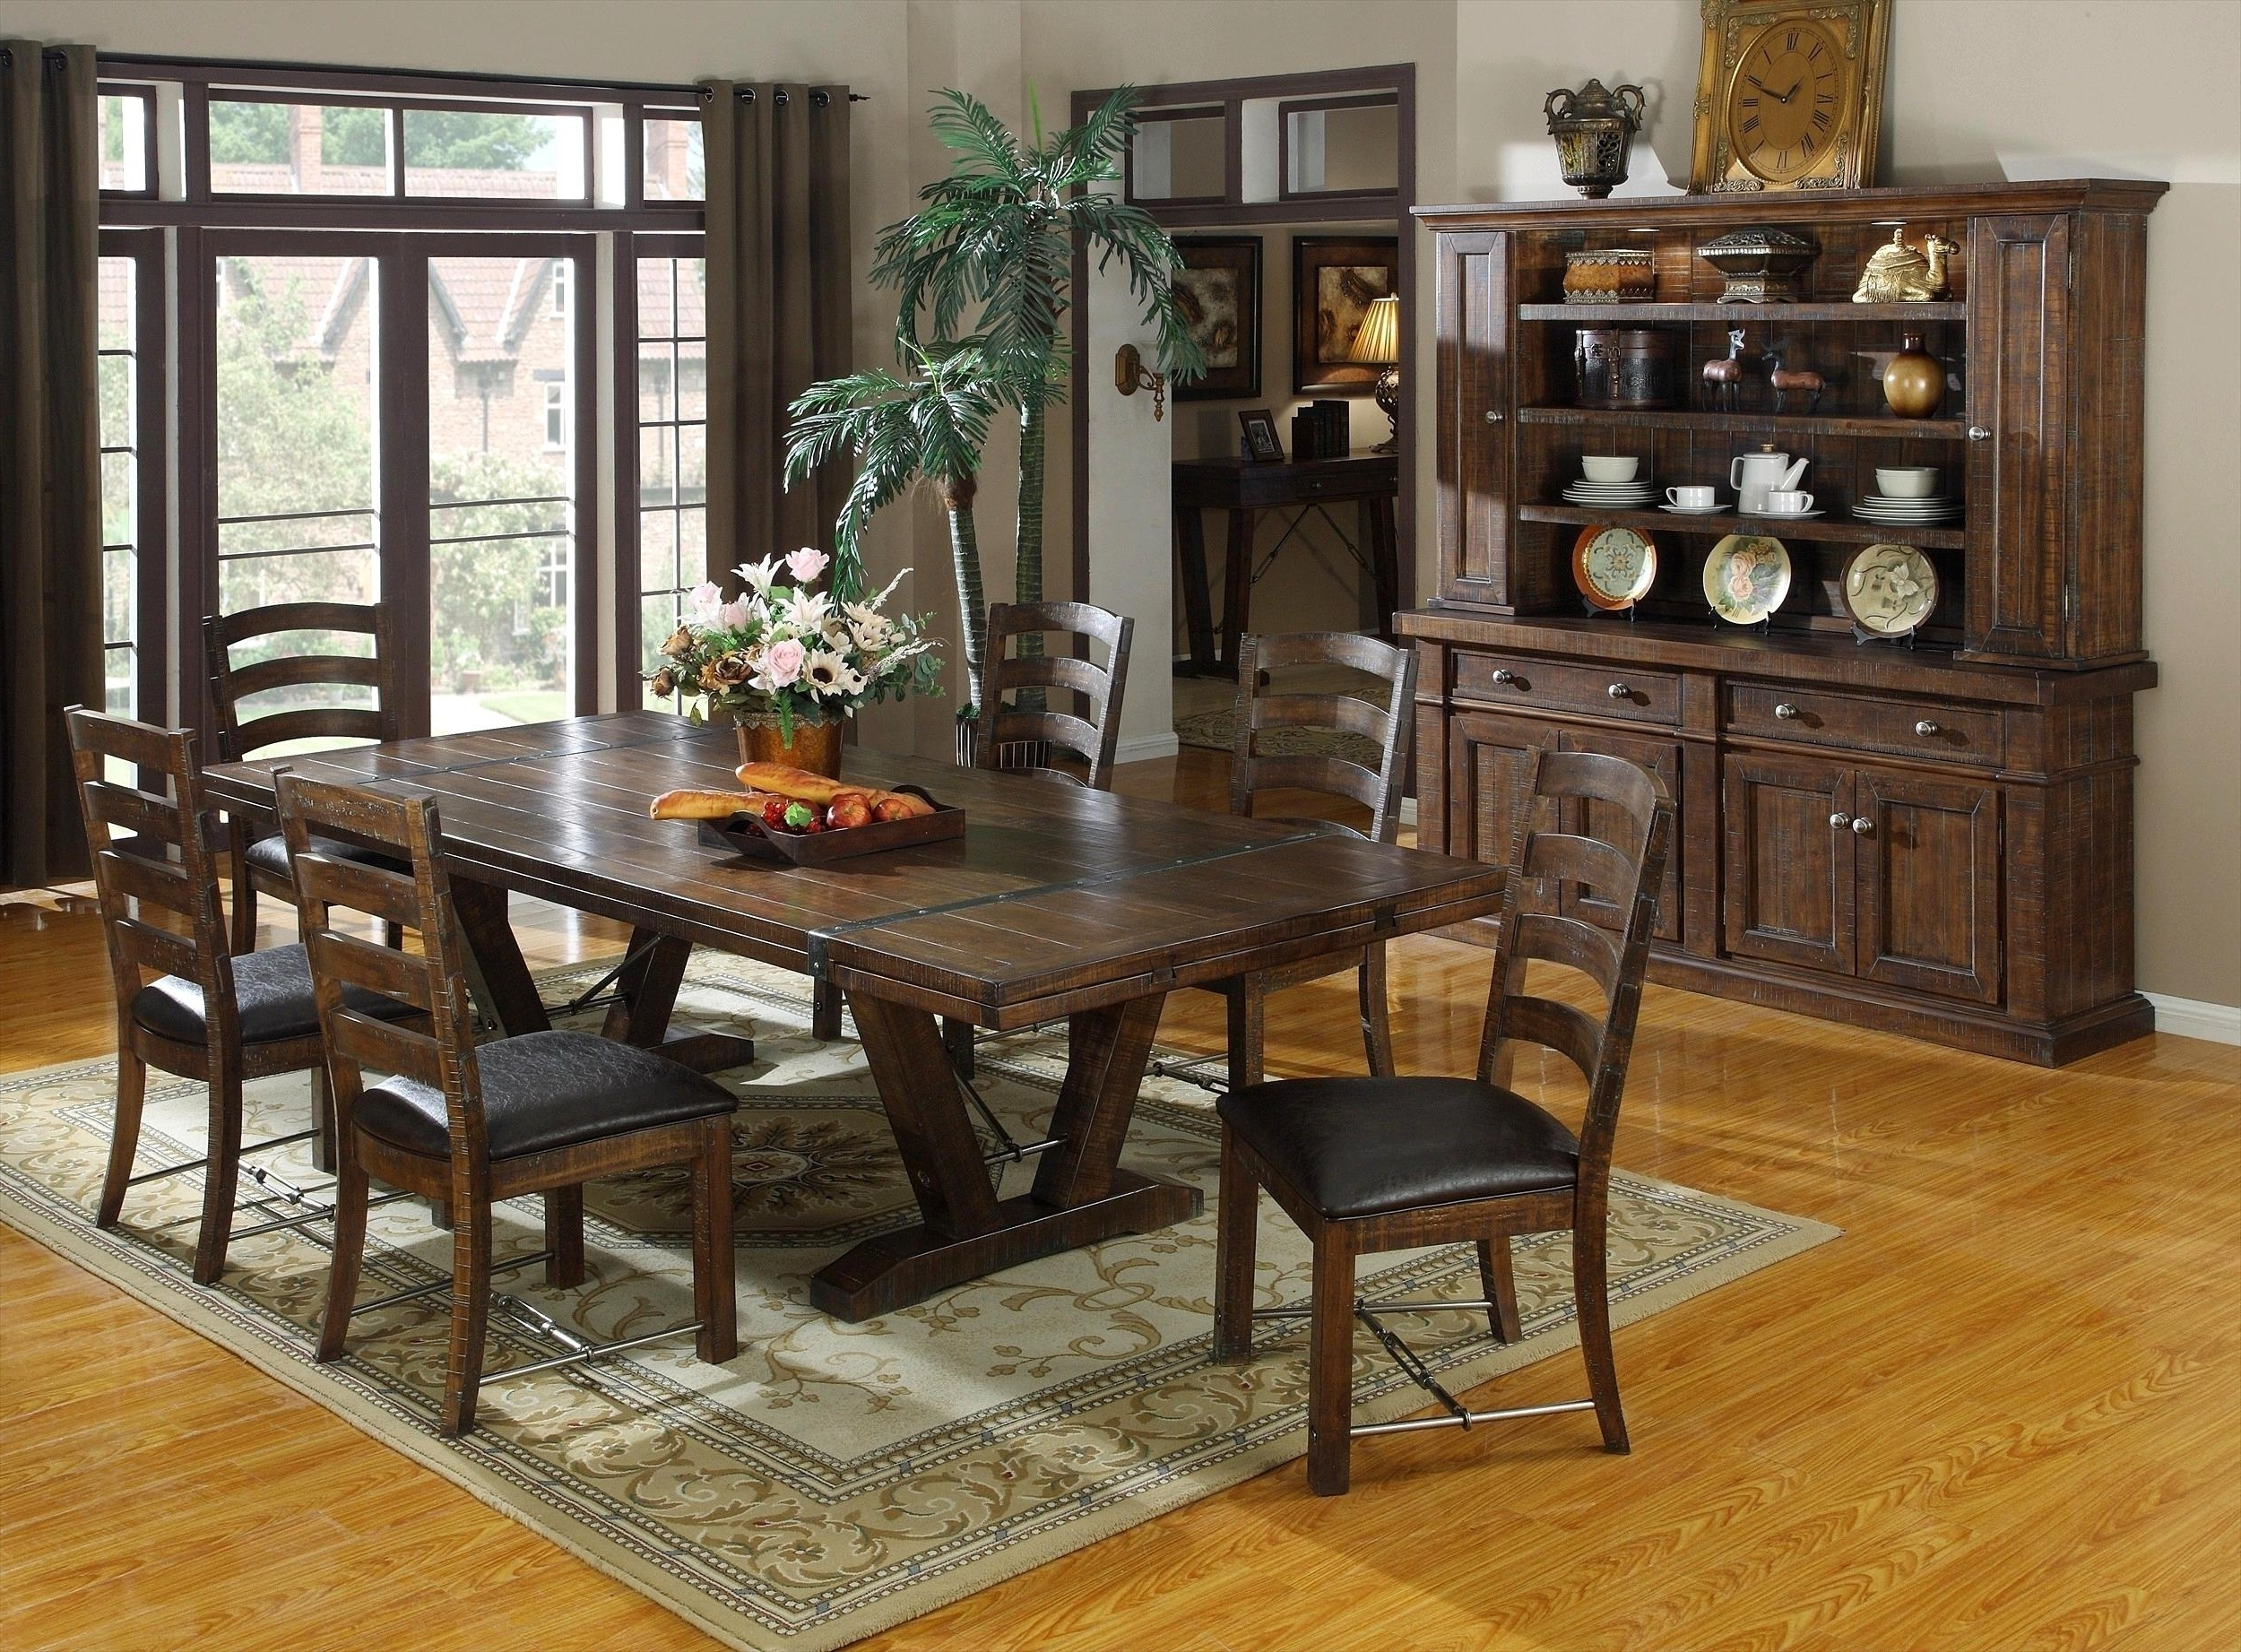 Inspiring Kitchen Dark Brown Wooden Dining Room Dark Brown Polished Intended For Most Current Dark Brown Wood Dining Tables (View 19 of 25)